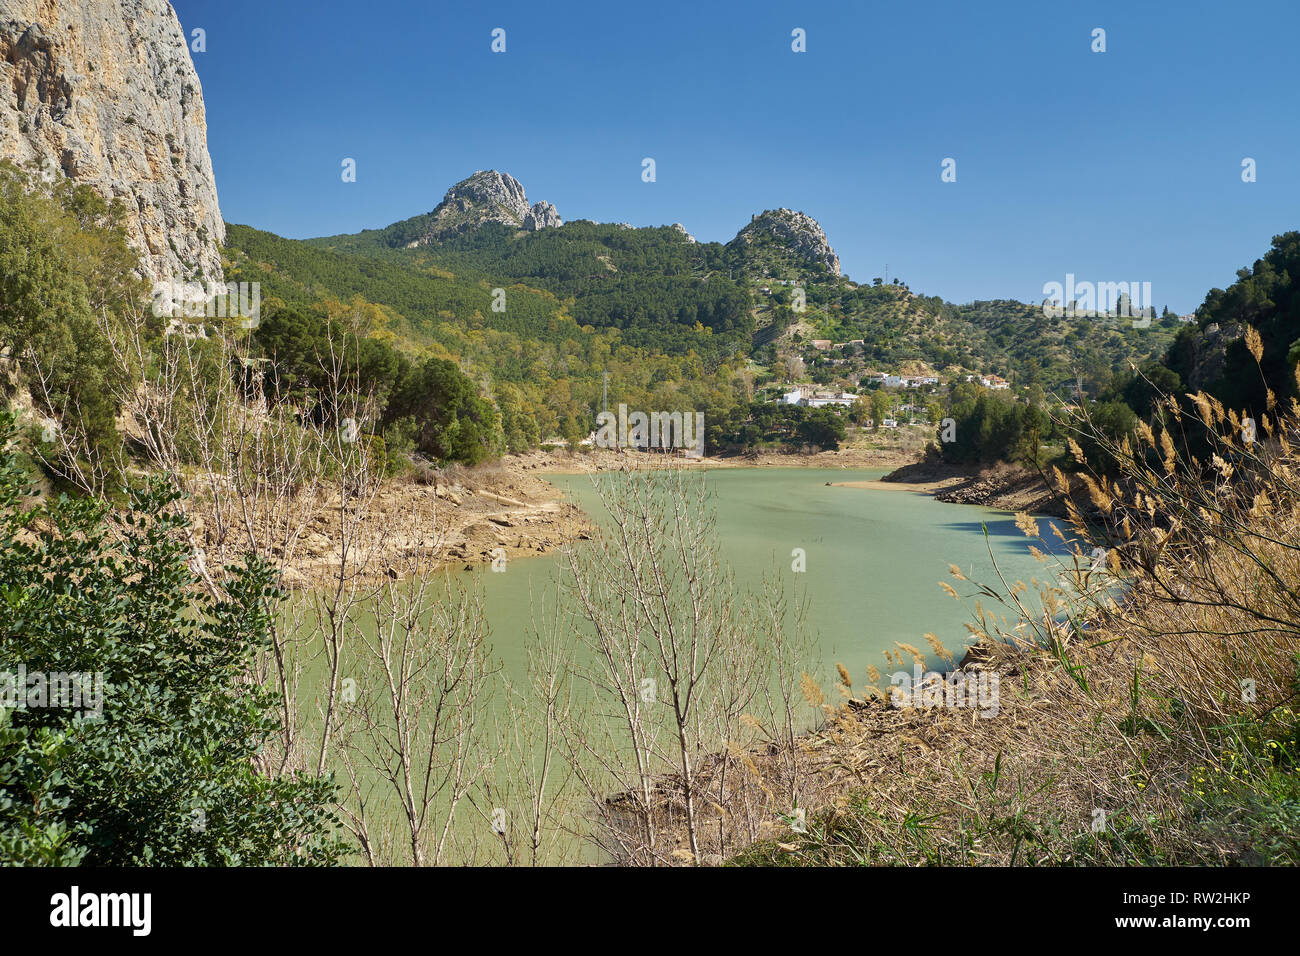 River Guadalhorce at El Chorro. Málaga, Spain. Stock Photo